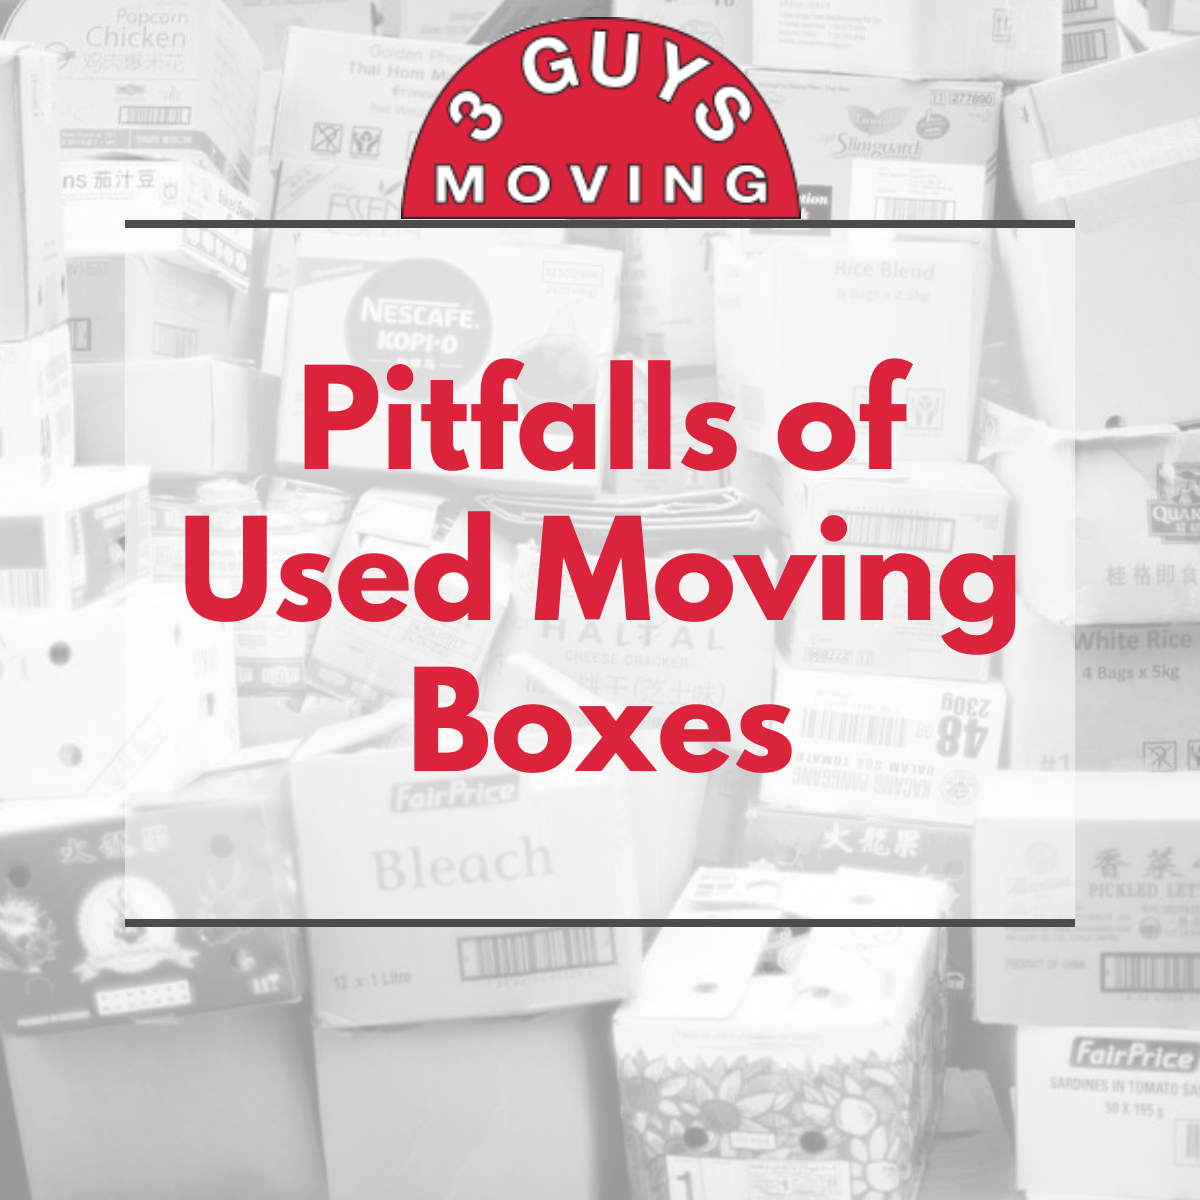 Pitfalls of Used Moving Boxes - Pitfalls of Used Moving Boxes